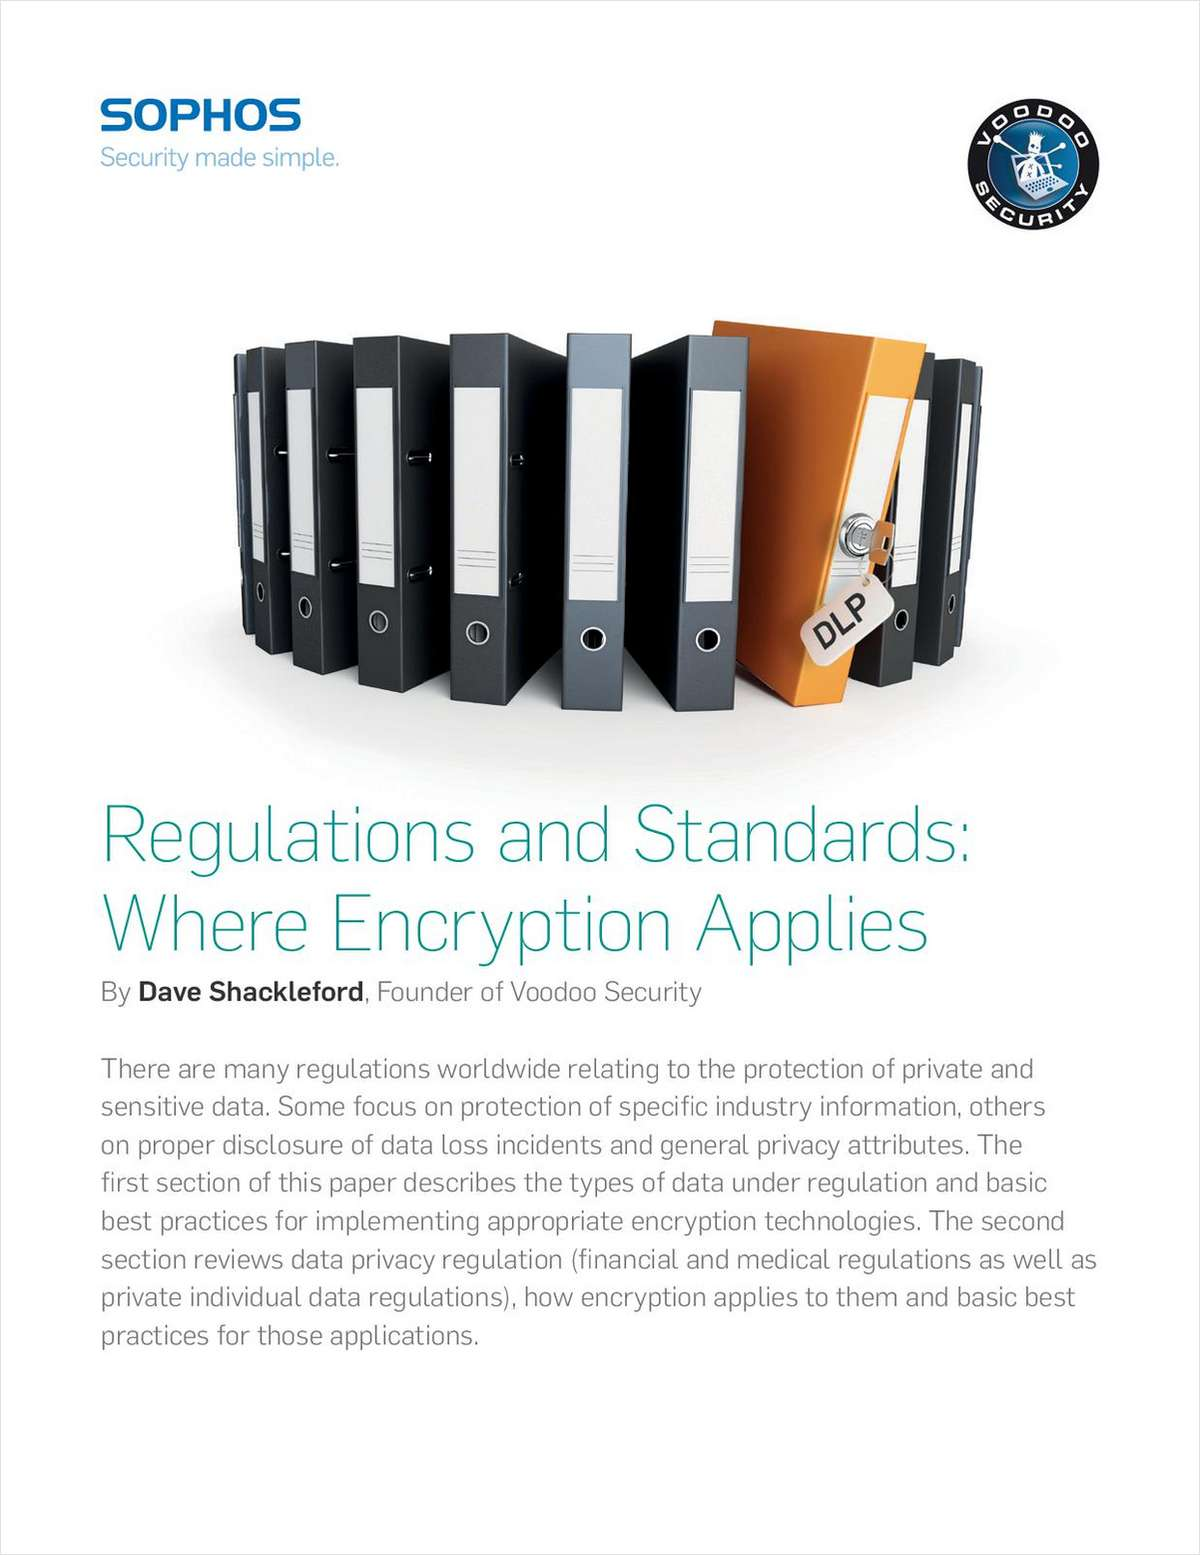 Regulations and Standards: Where Encryption Applies